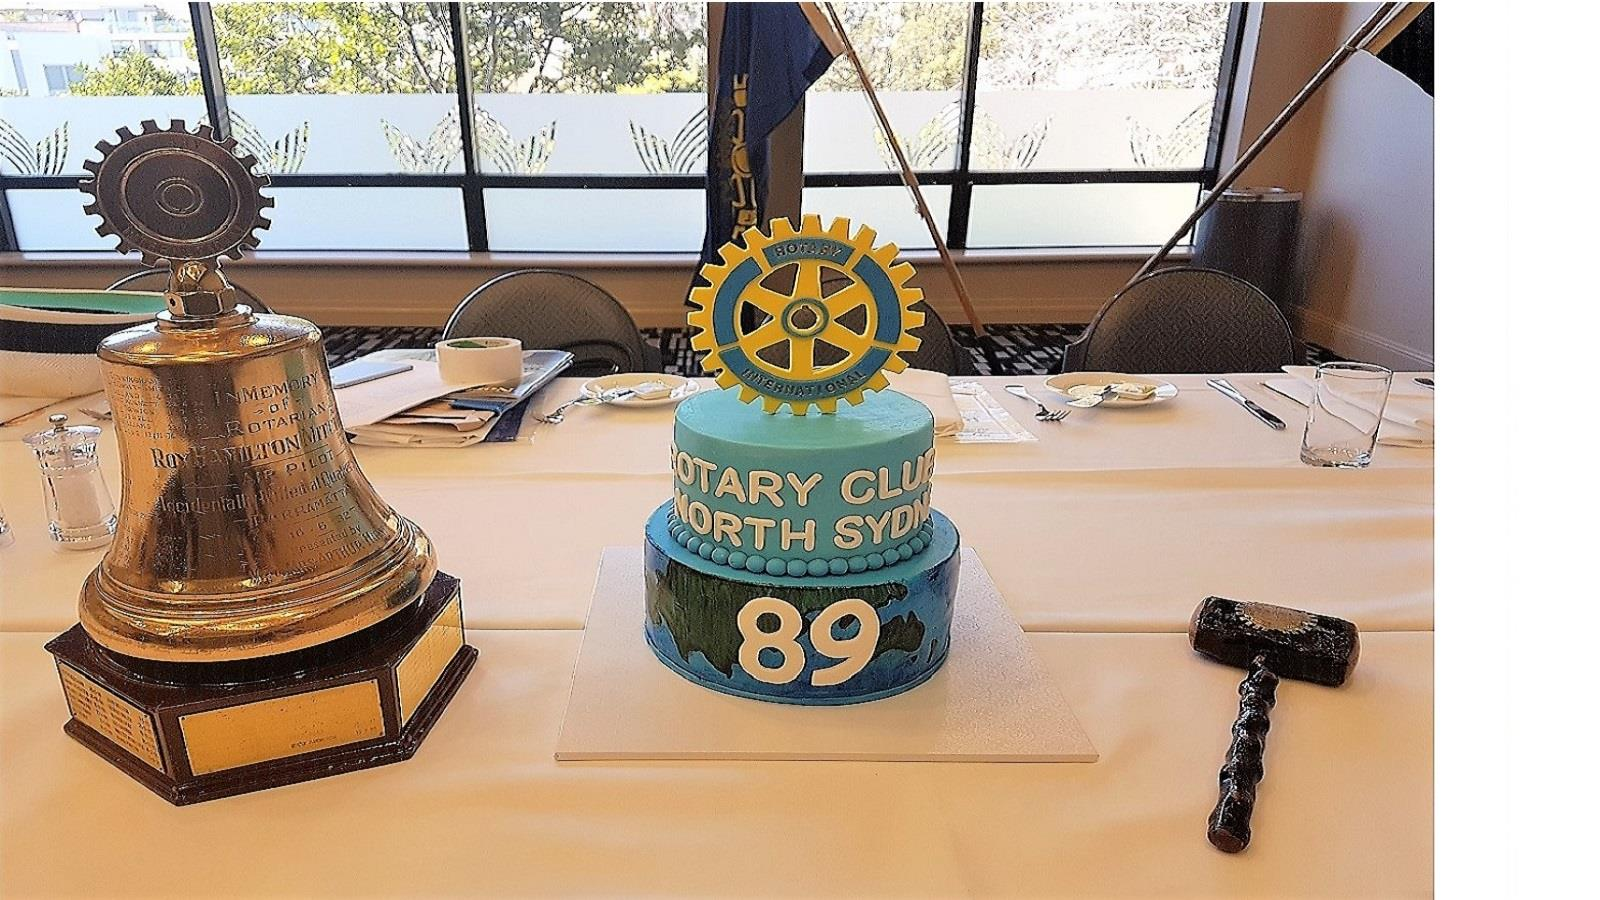 Our club turns 89!